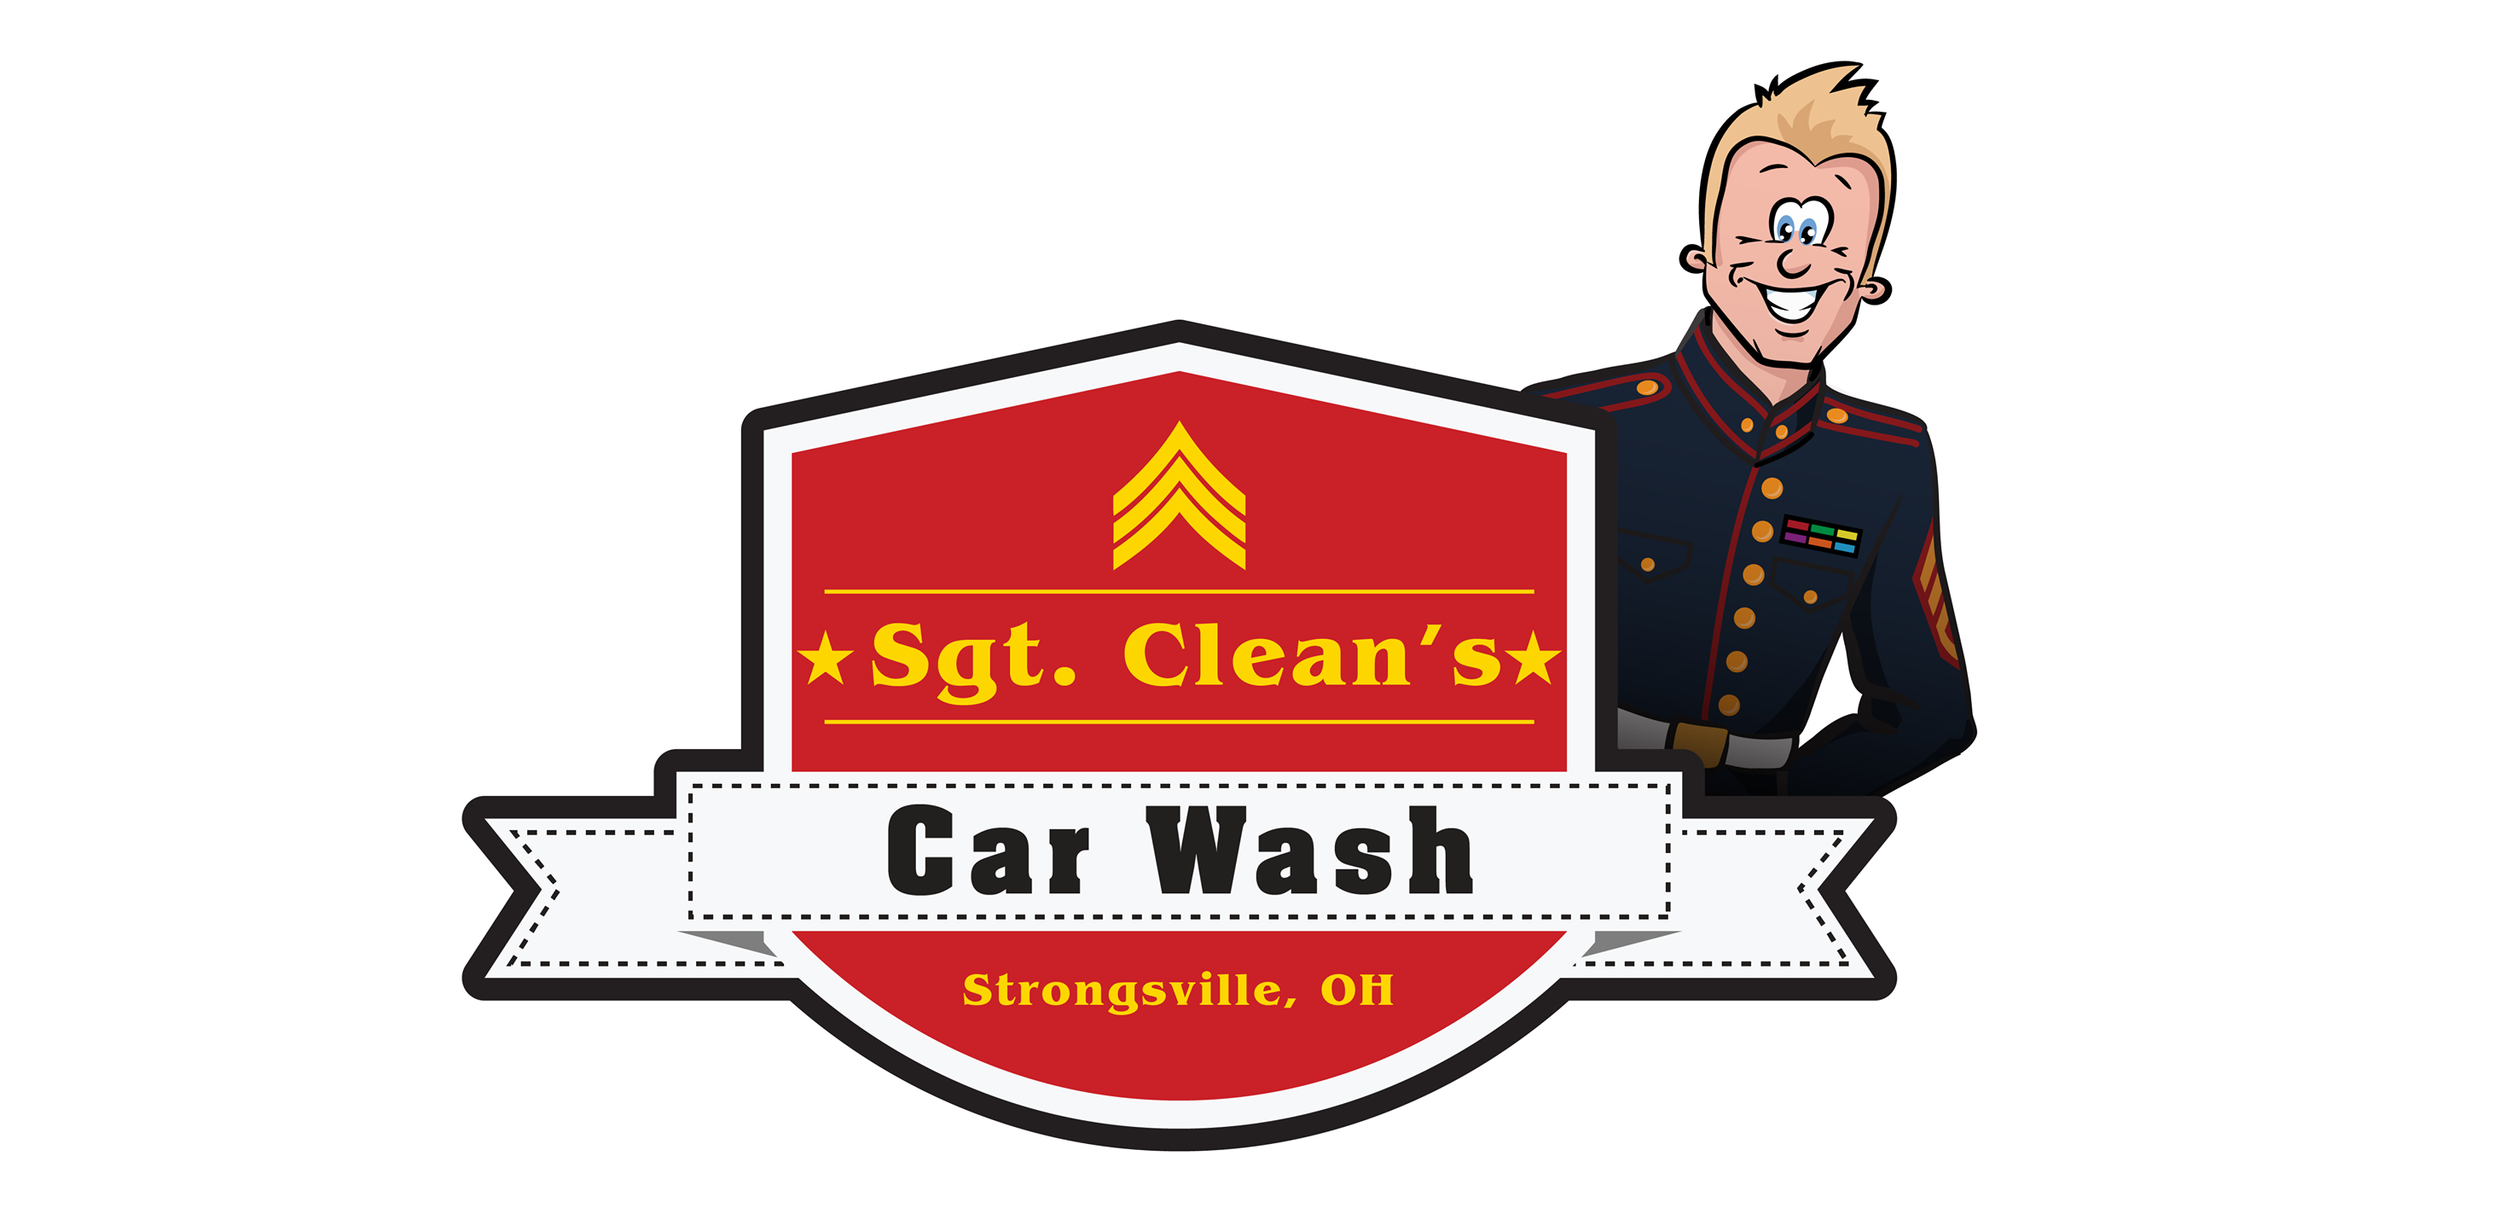 """Veteran-owned and operated since 2013, our mission at Sgt. Clean's Car Wash is to provide the highest quality car wash and superior customer service, while serving as positive role models in our communities.  Winner of the Cleveland Hot List """"Best Car Wash"""" in 2016, 2017 and 2018, Sgt. Clean's Car Wash operates five locations in Northeast Ohio."""